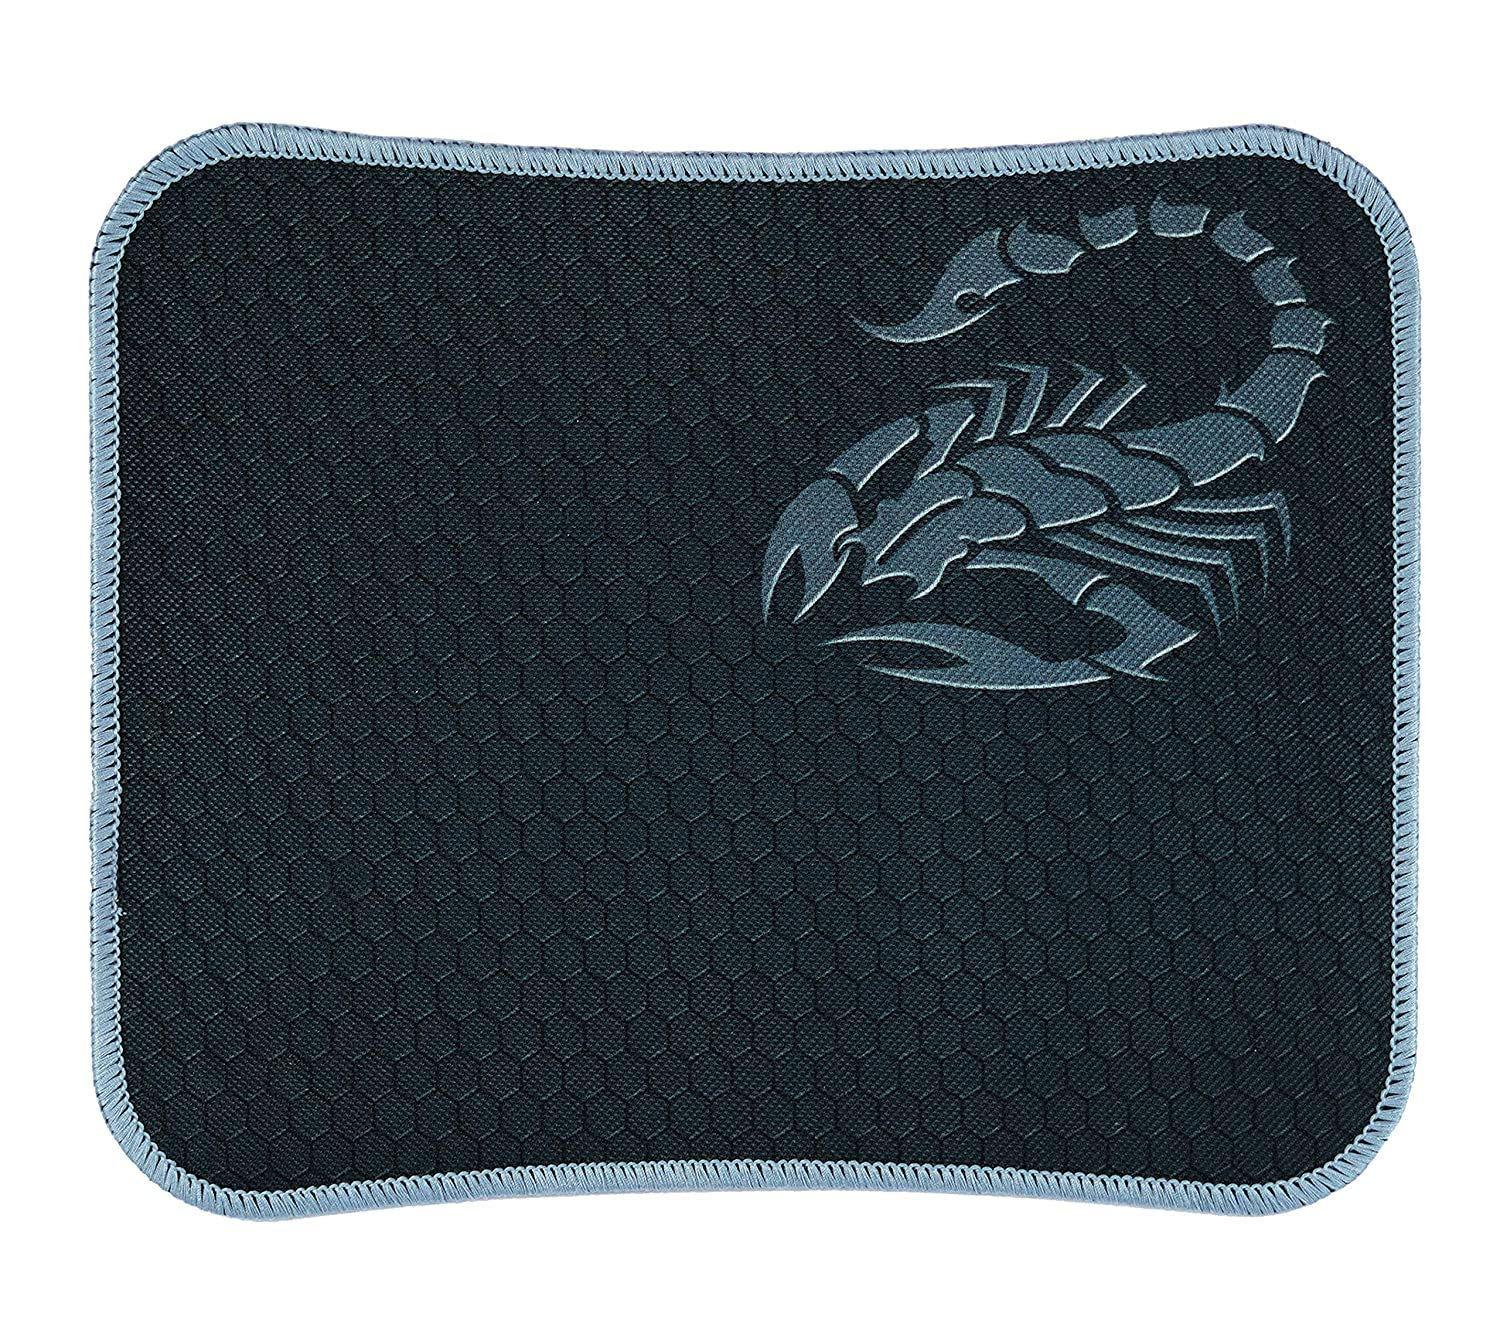 RiaTech Water Resistance Coating Natural Rubber Gaming Mouse Pad (Under 500 INR)